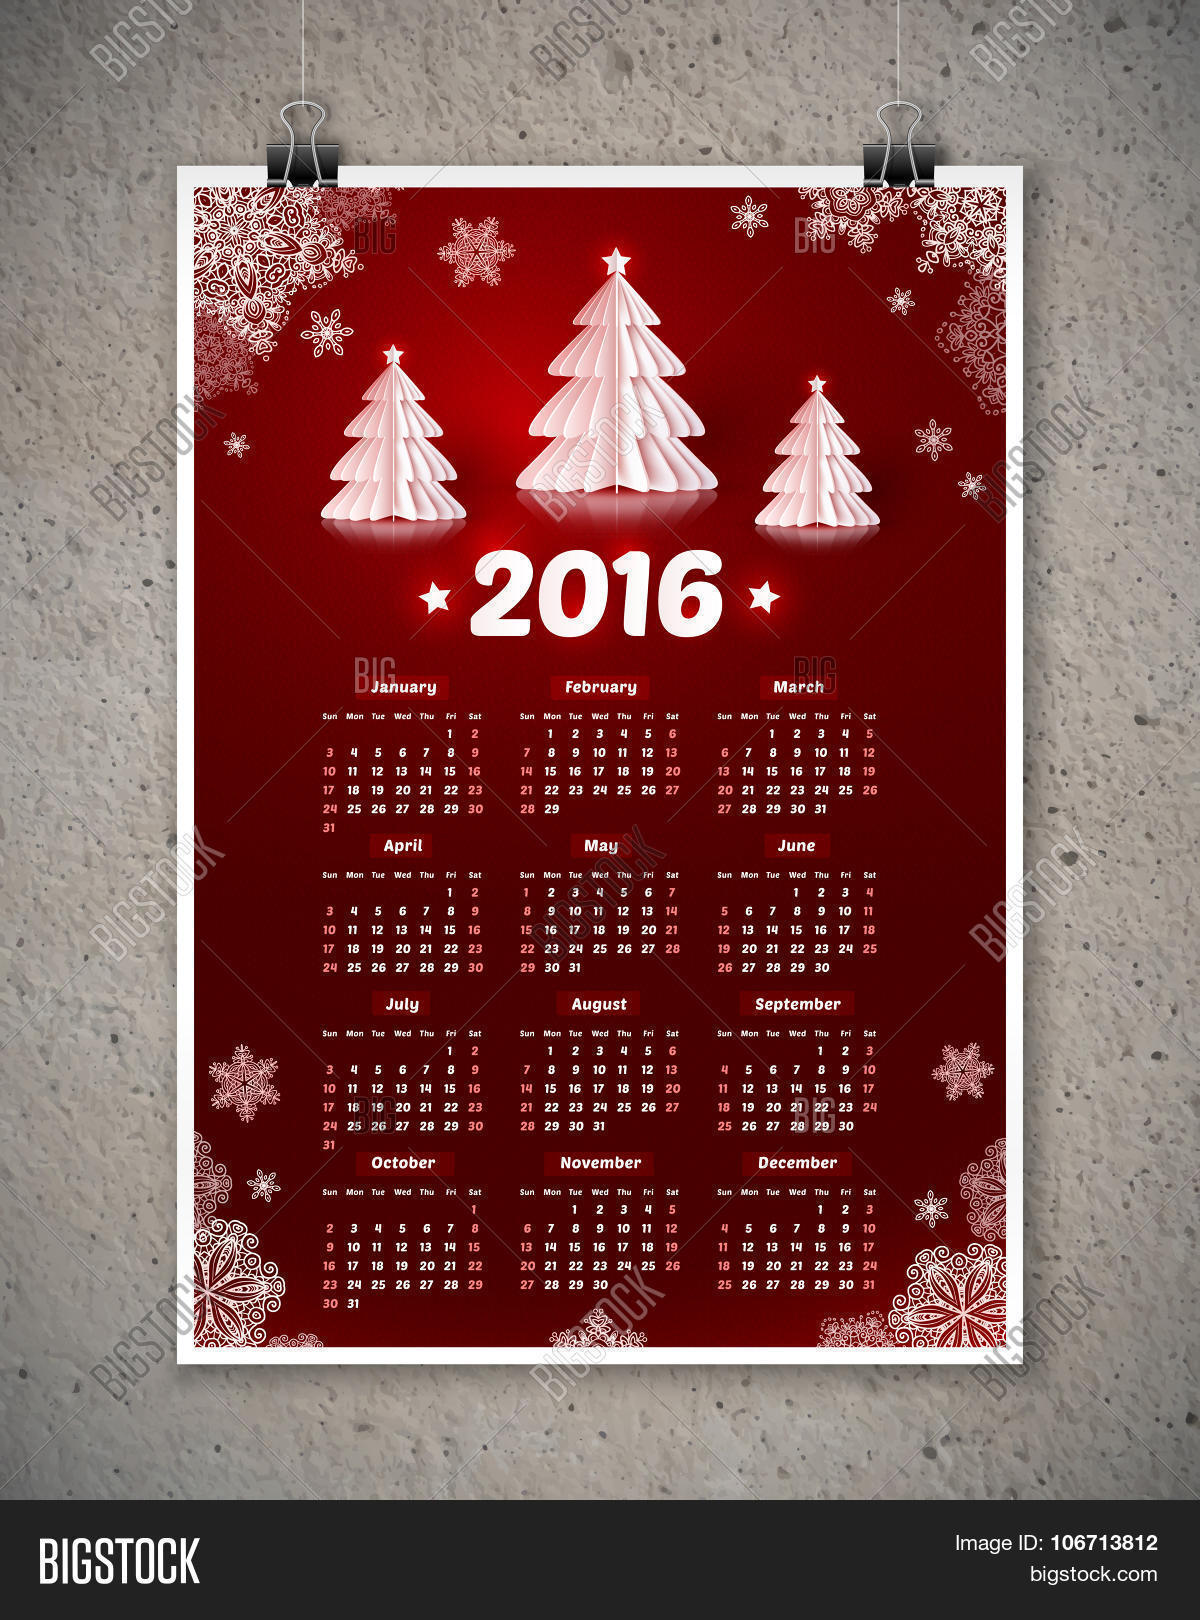 dark red new year calendar white paper christmas trees dark red 2016 new year calendar white paper christmas trees and snowflakes poster template